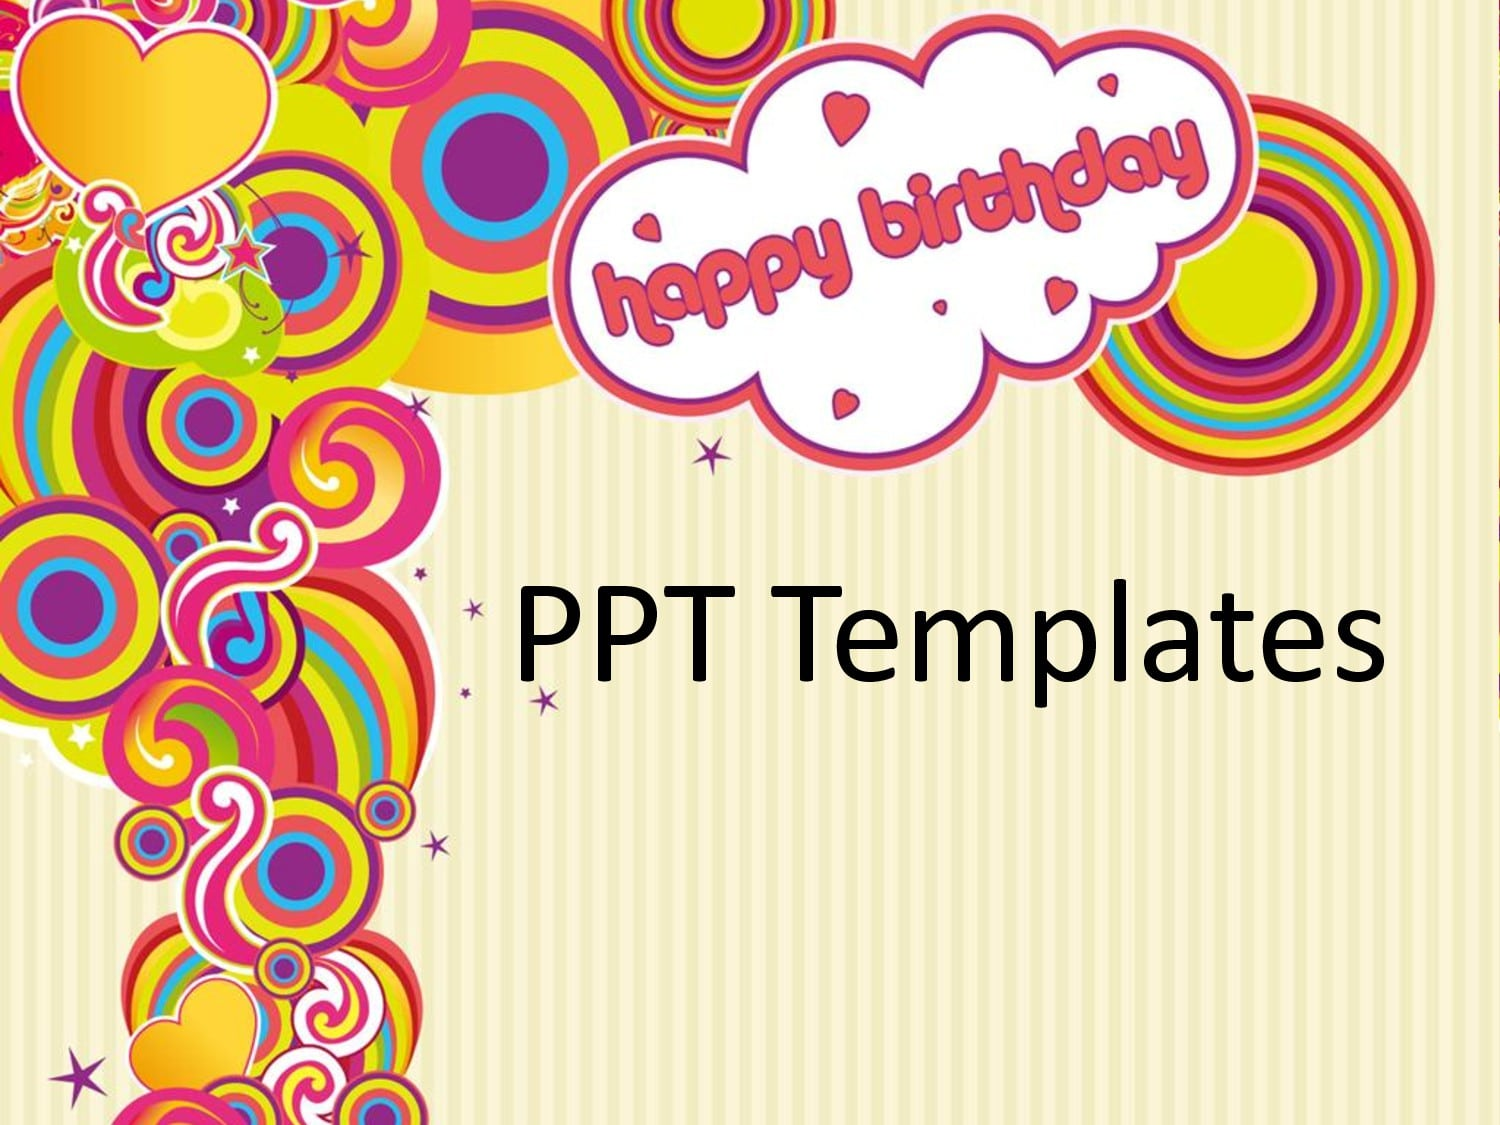 Th Birthday Ideas Birthday Invitation Templates Download - Birthday invitation images download